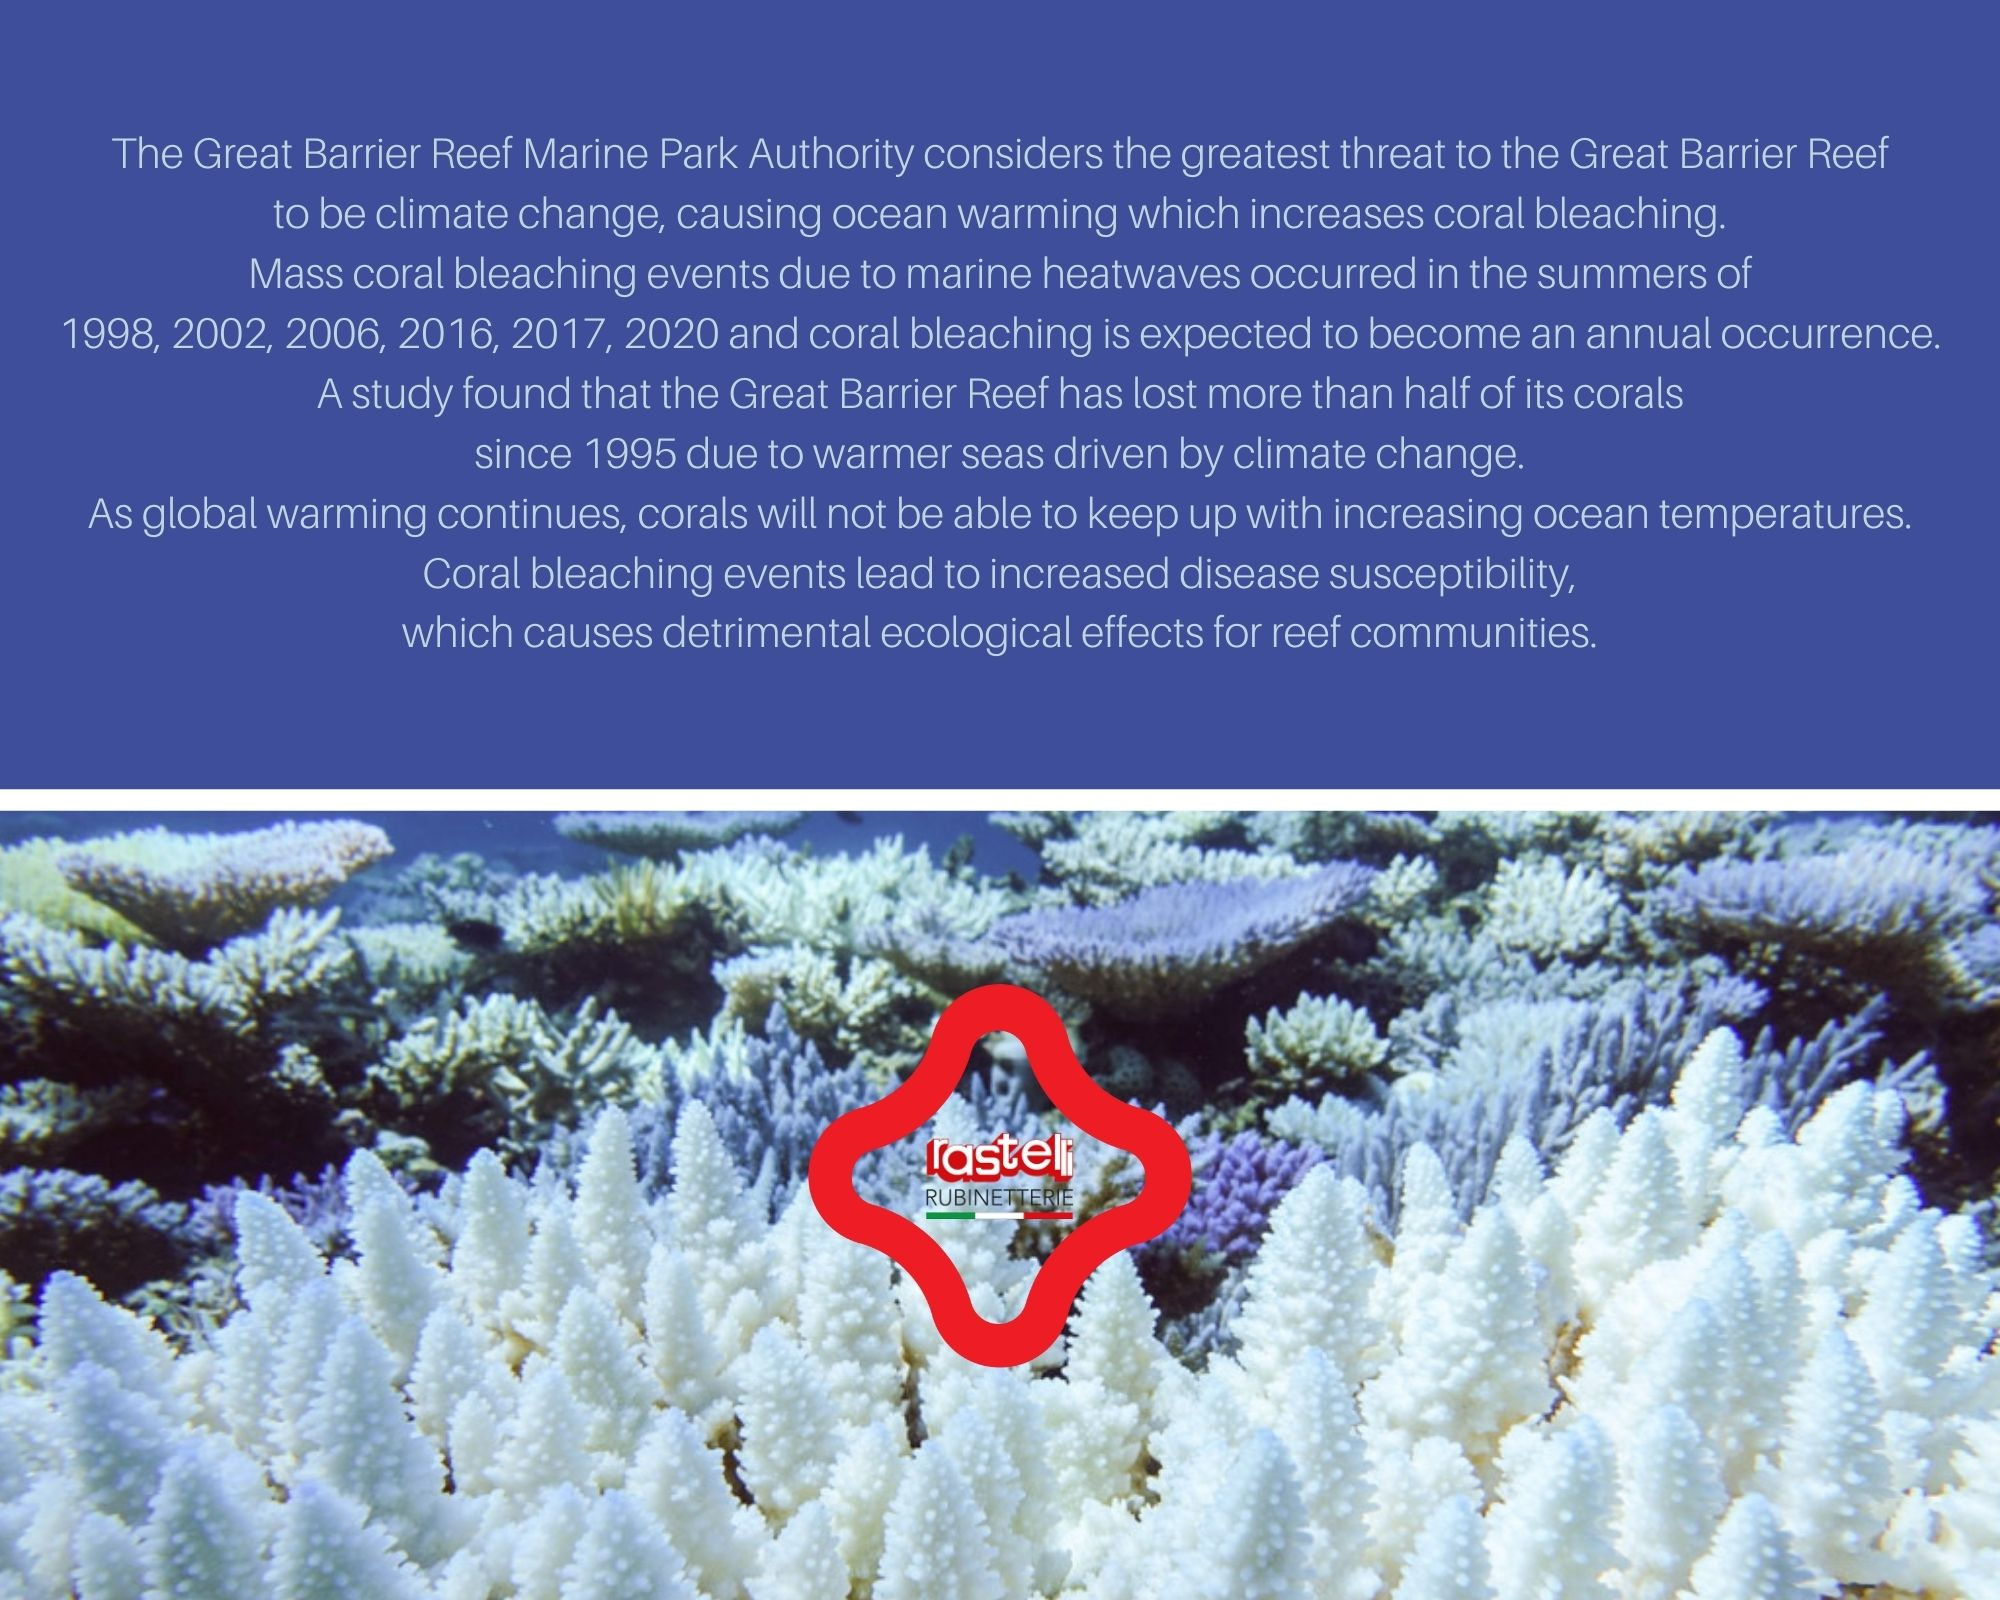 THE GREAT BARRIER REEF 2